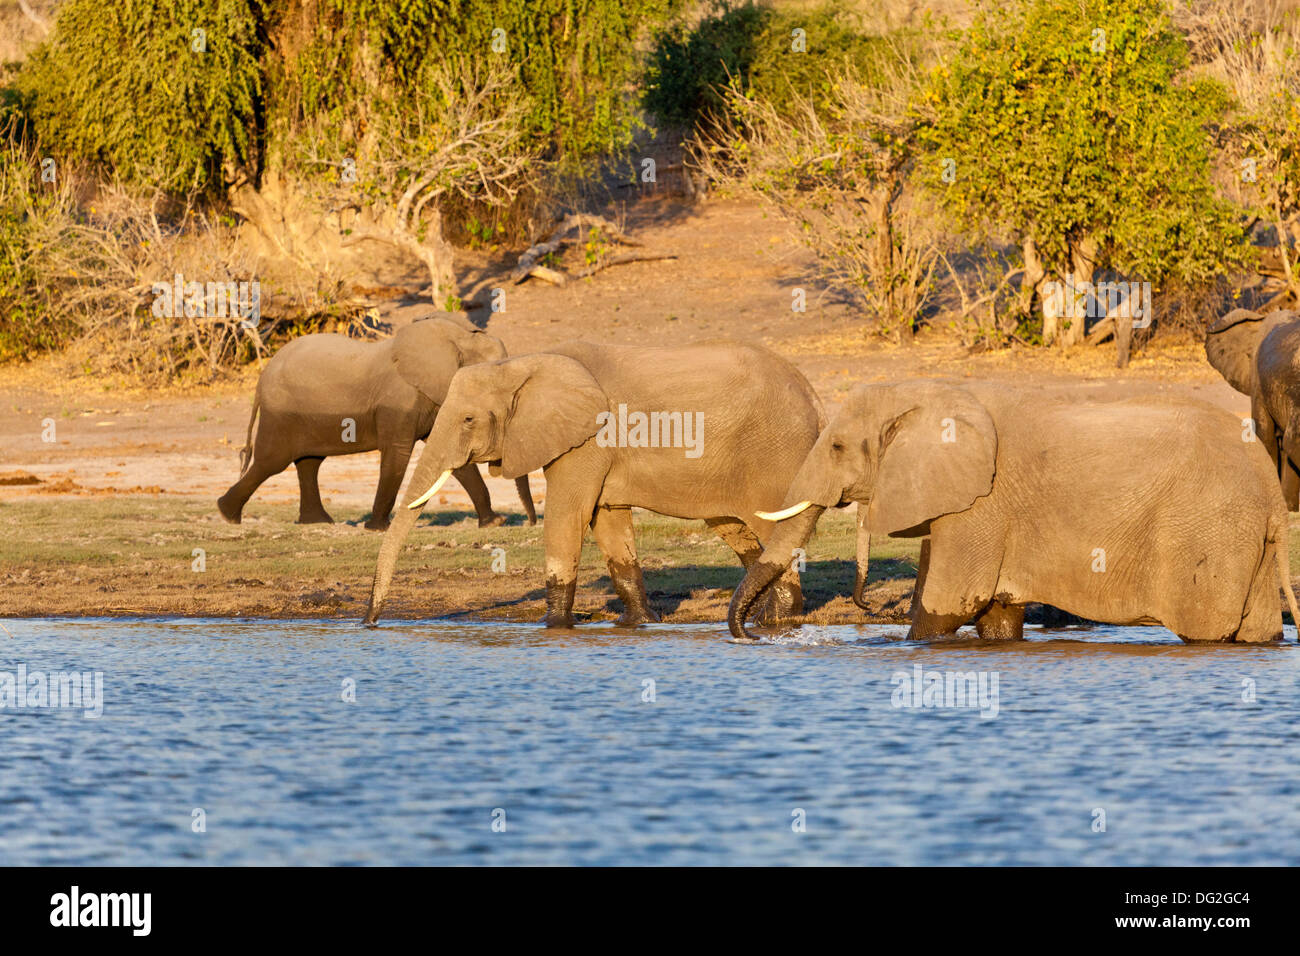 A breeding herd of African elephants (Loxodonta africana) drinking by the banks of the River Chobe in Botswana Stock Photo